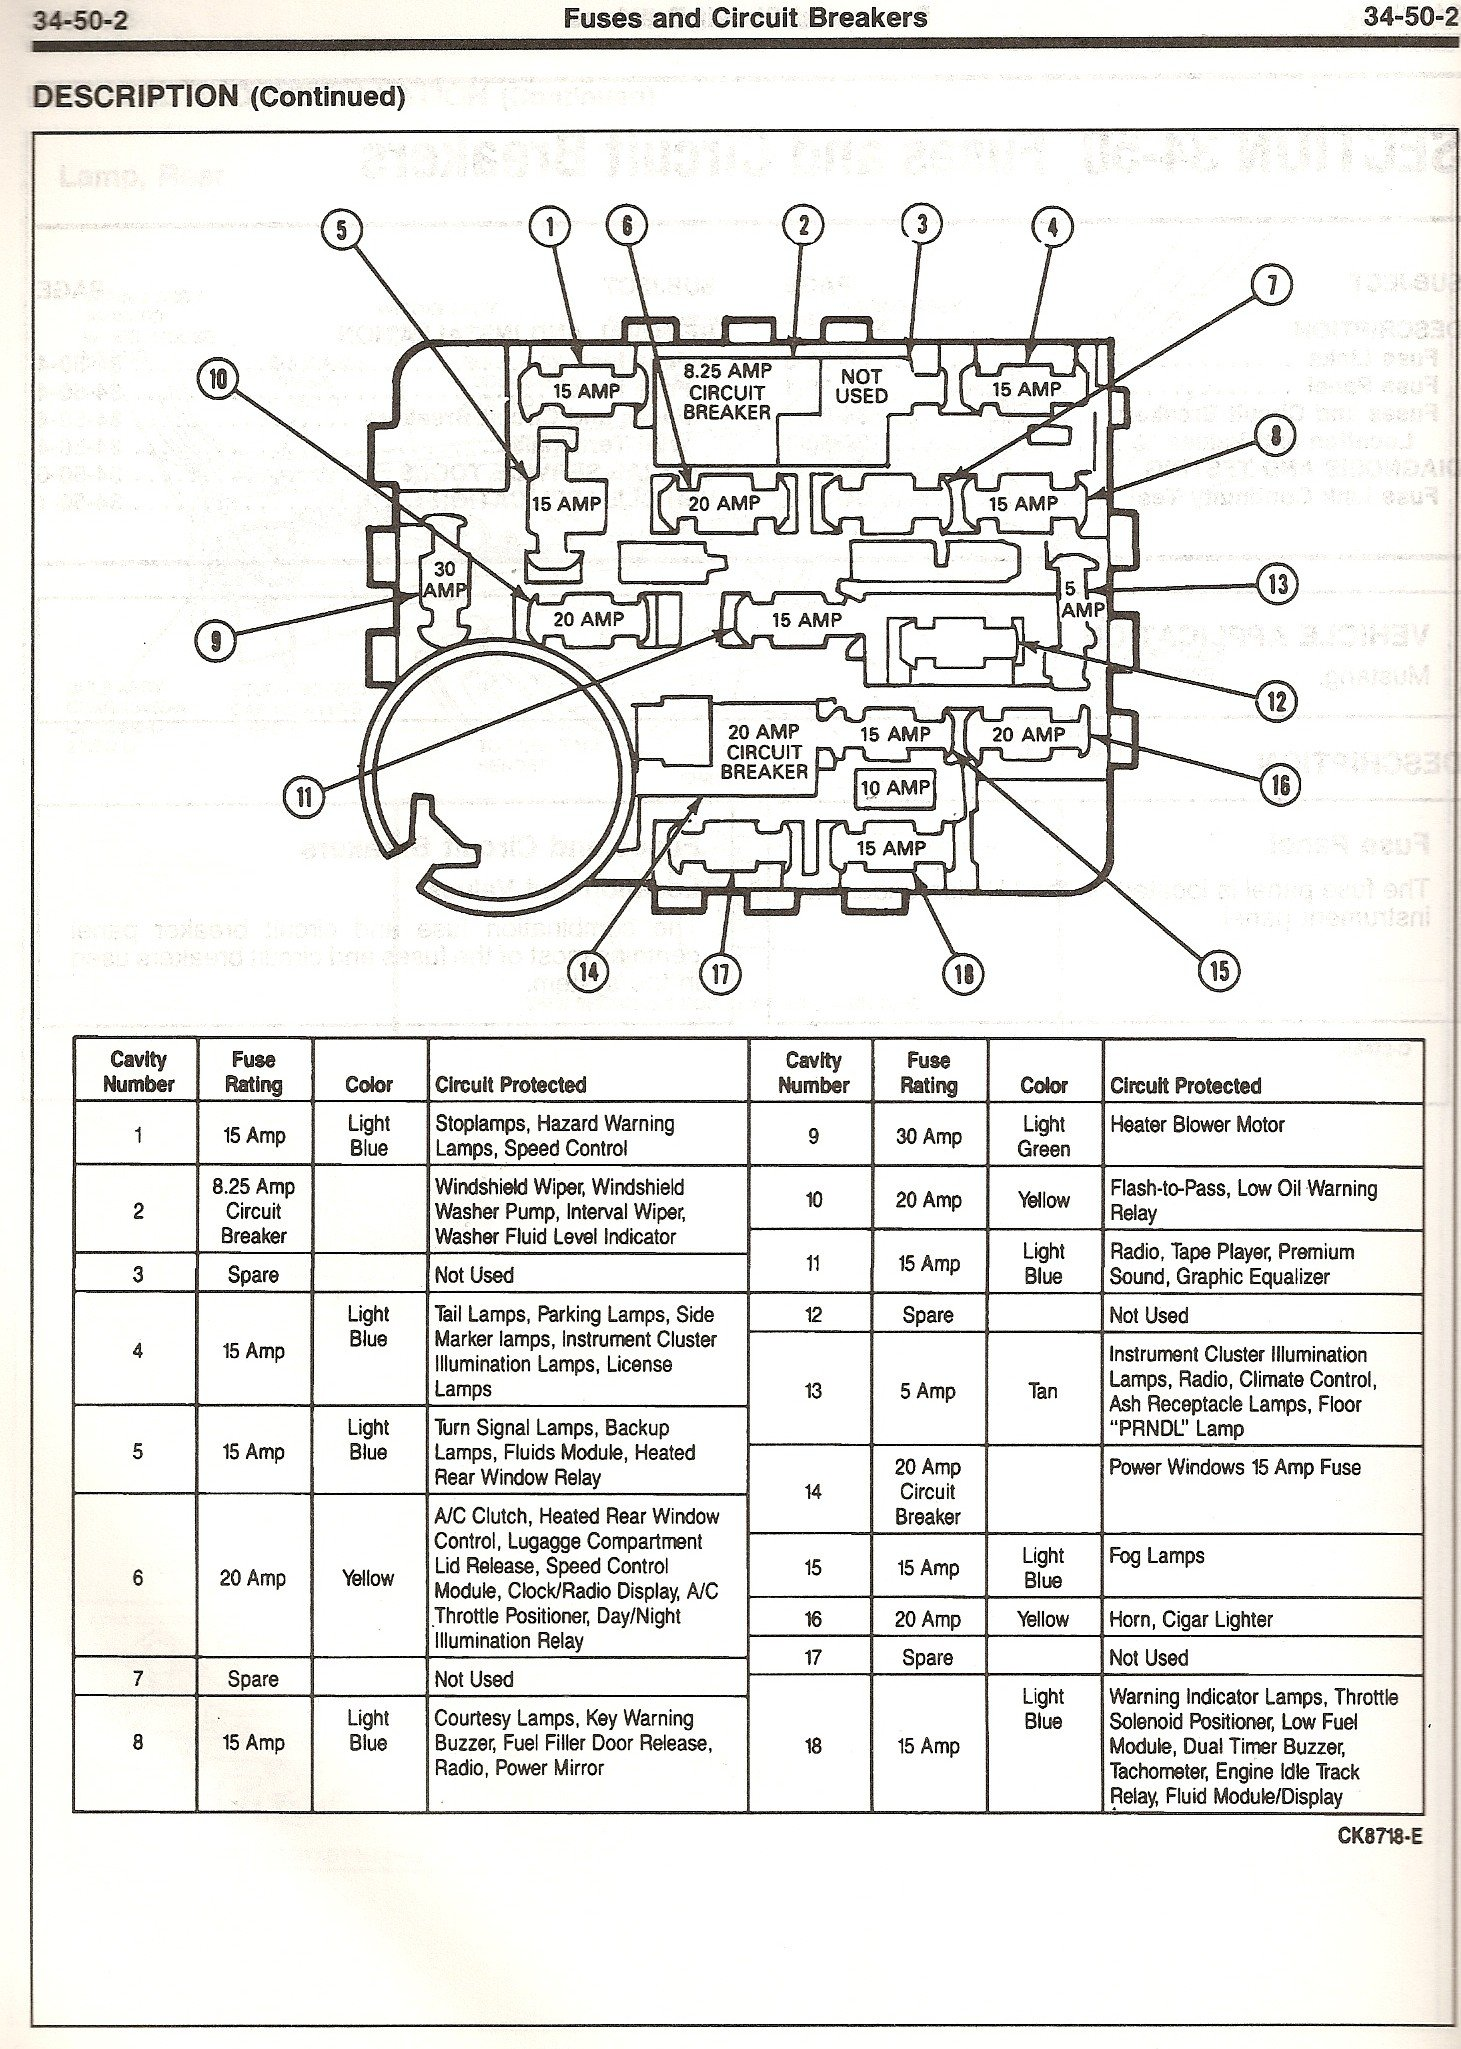 Ford Fiesta Fuse Box Diagram